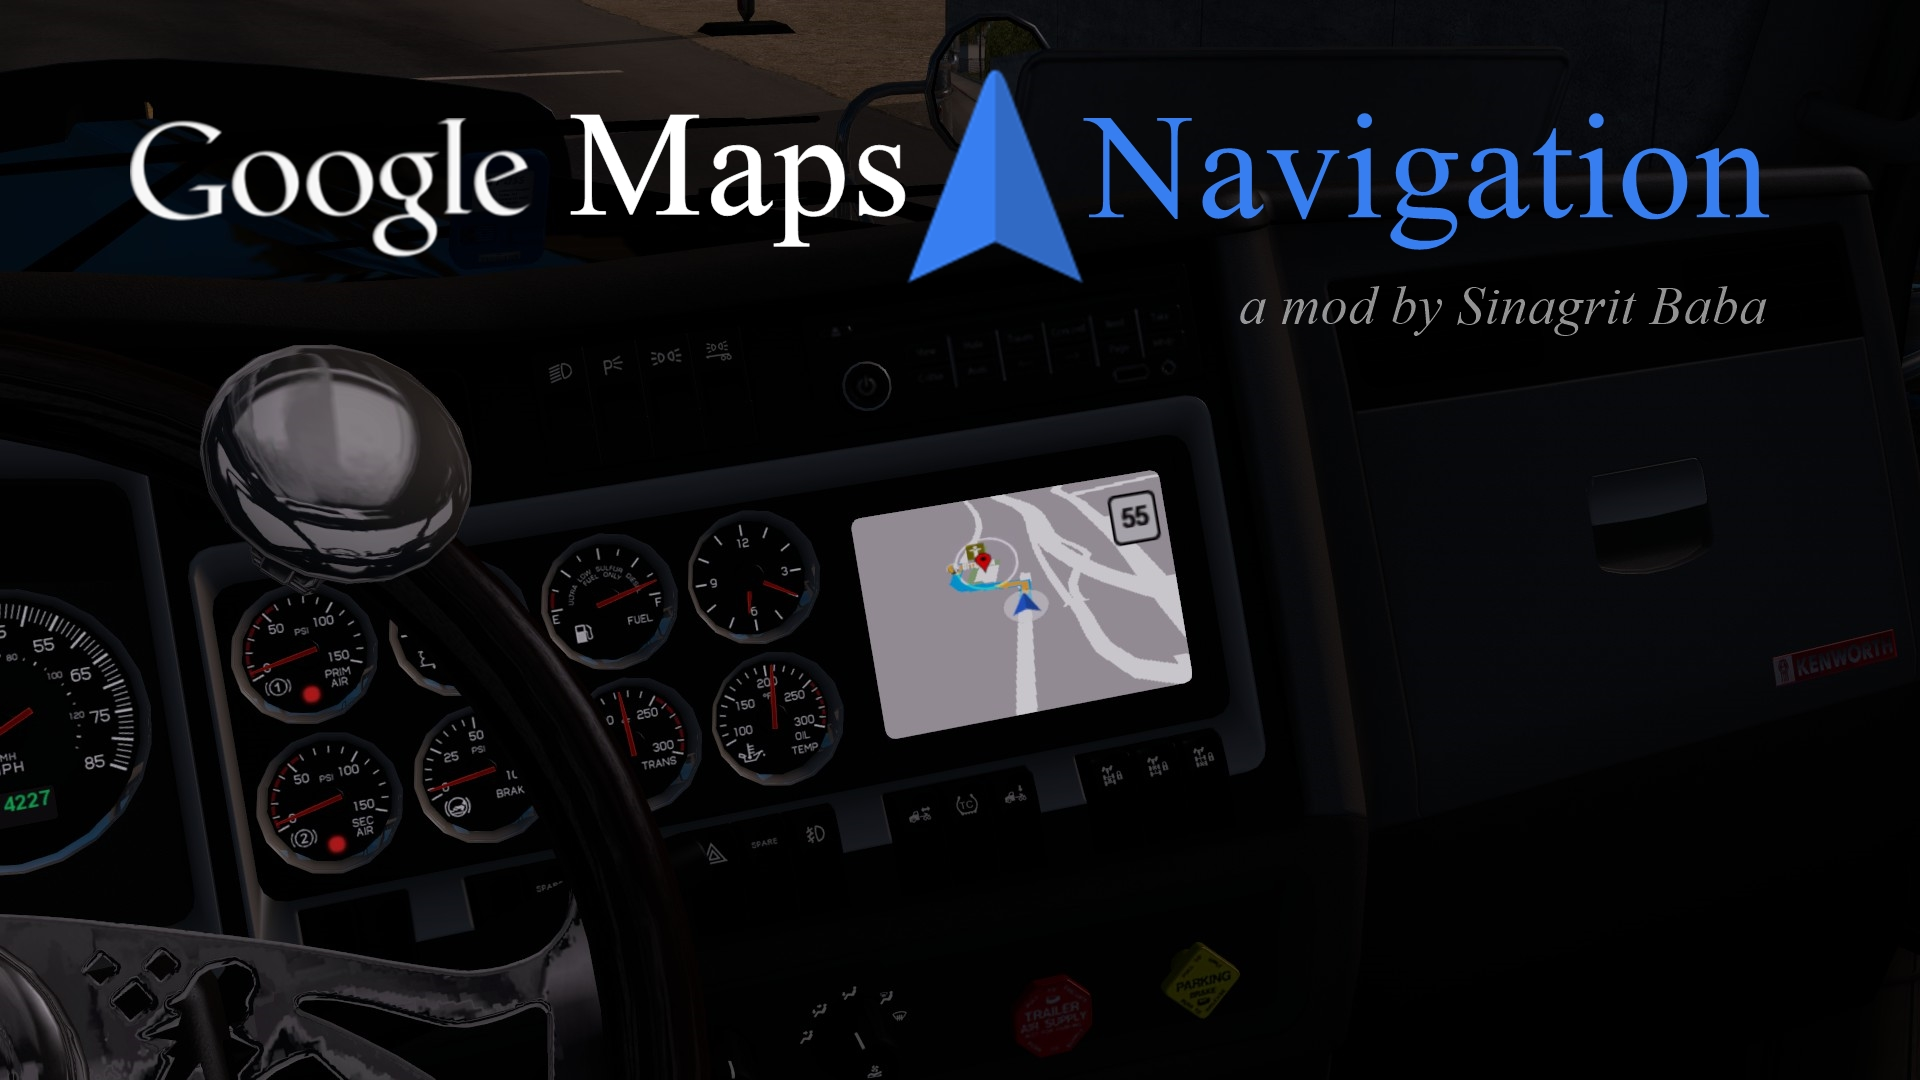 Google Maps Navigation v1.9 • ATS mods | American truck ... on google satellite live camera, facebook airplane, mapquest by airplane, apple maps airplane, google earth airplane, google airplane simulator, sketchup airplane,